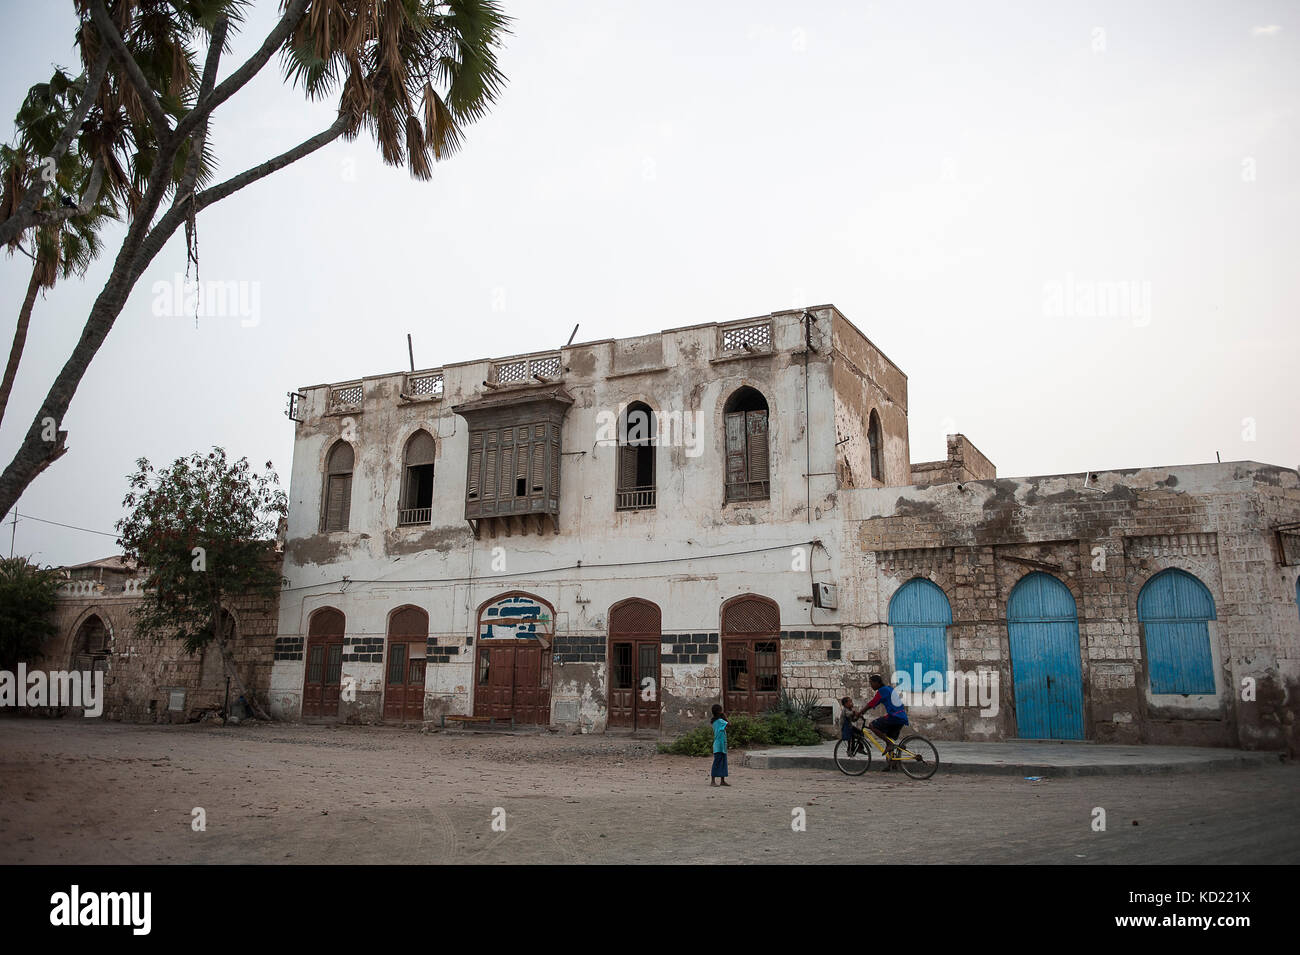 massawa eritrea stock photos massawa eritrea stock